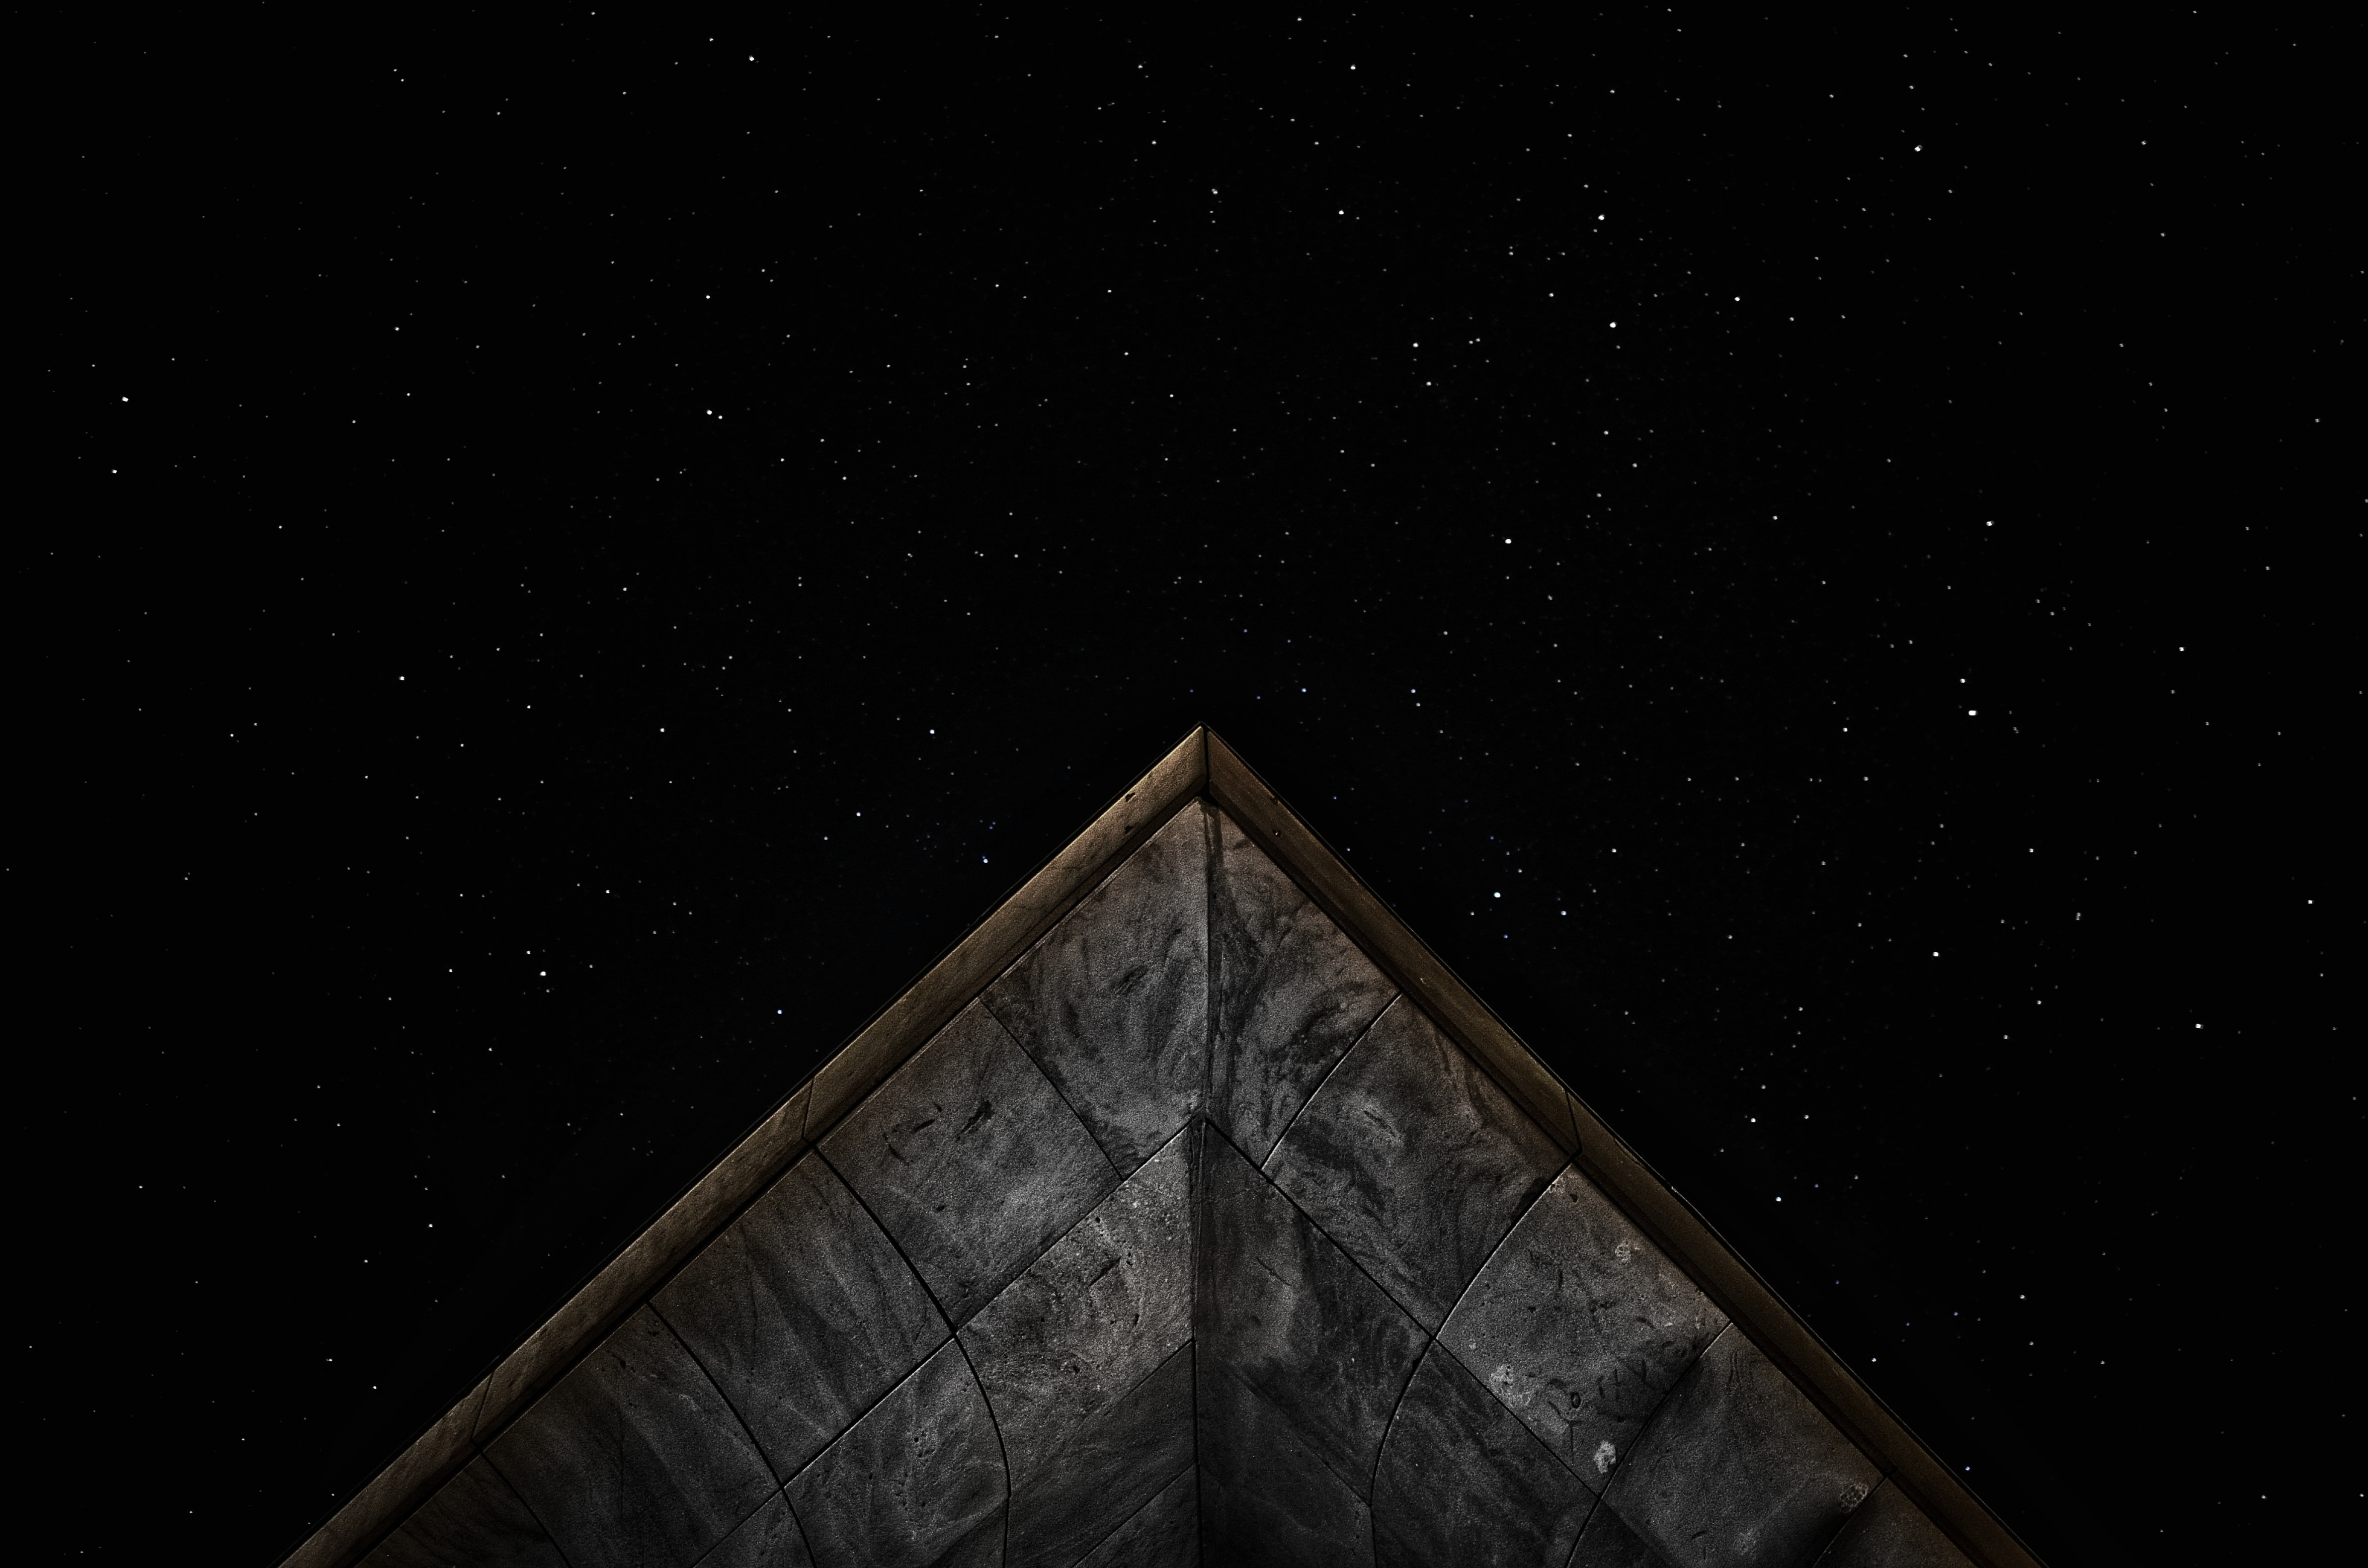 The peak of the roof of a stone building against the starry night in Sardegna.